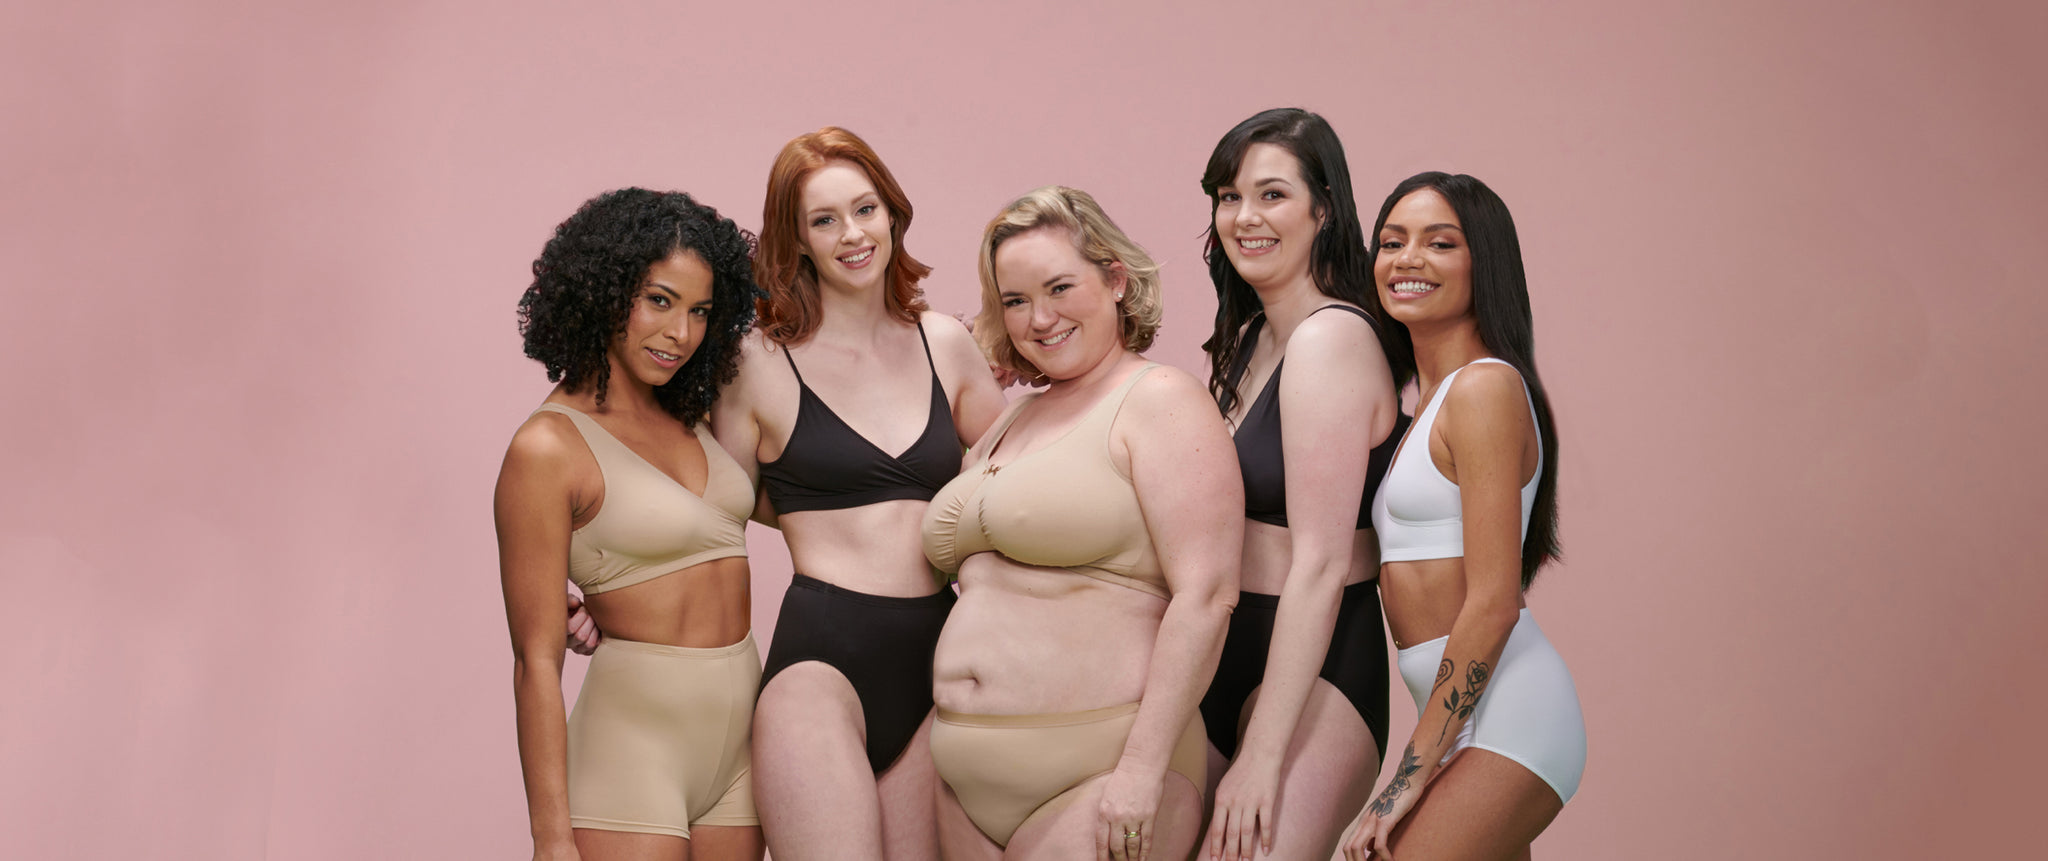 Group of diverse women standing together in various styles of underwear